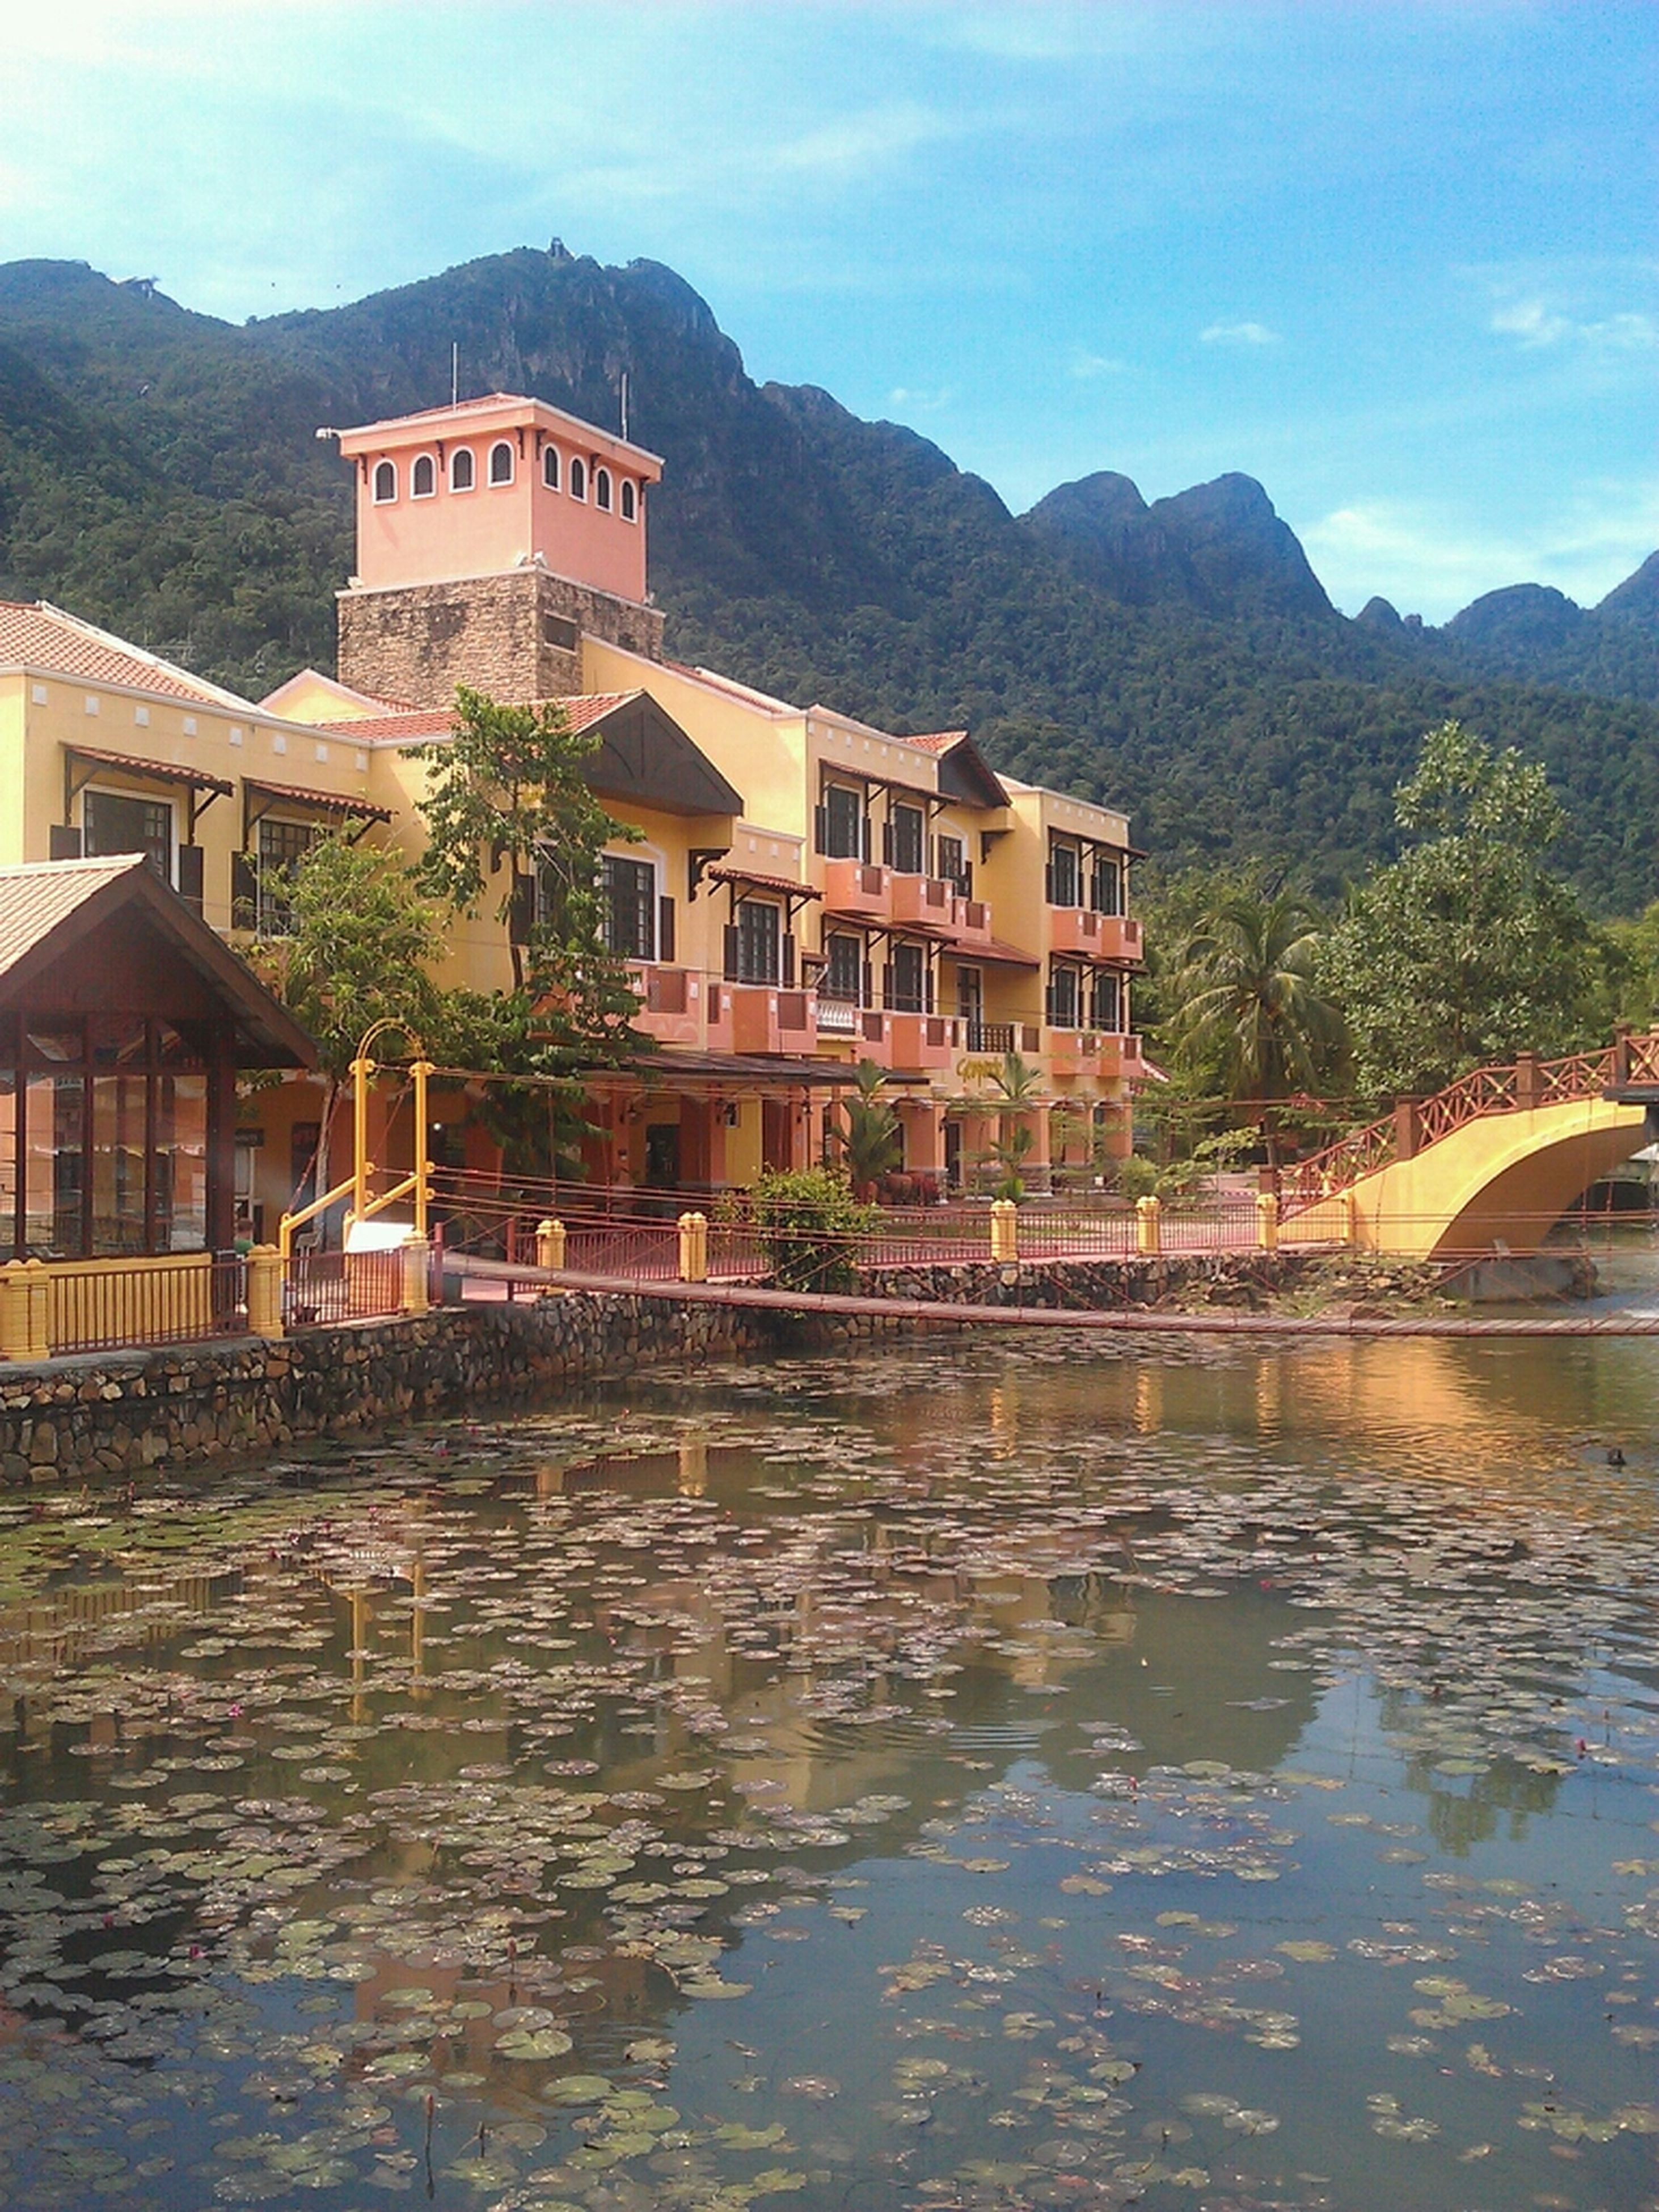 architecture, built structure, building exterior, water, mountain, waterfront, house, reflection, river, sky, mountain range, lake, residential structure, residential building, town, canal, outdoors, nature, tree, day